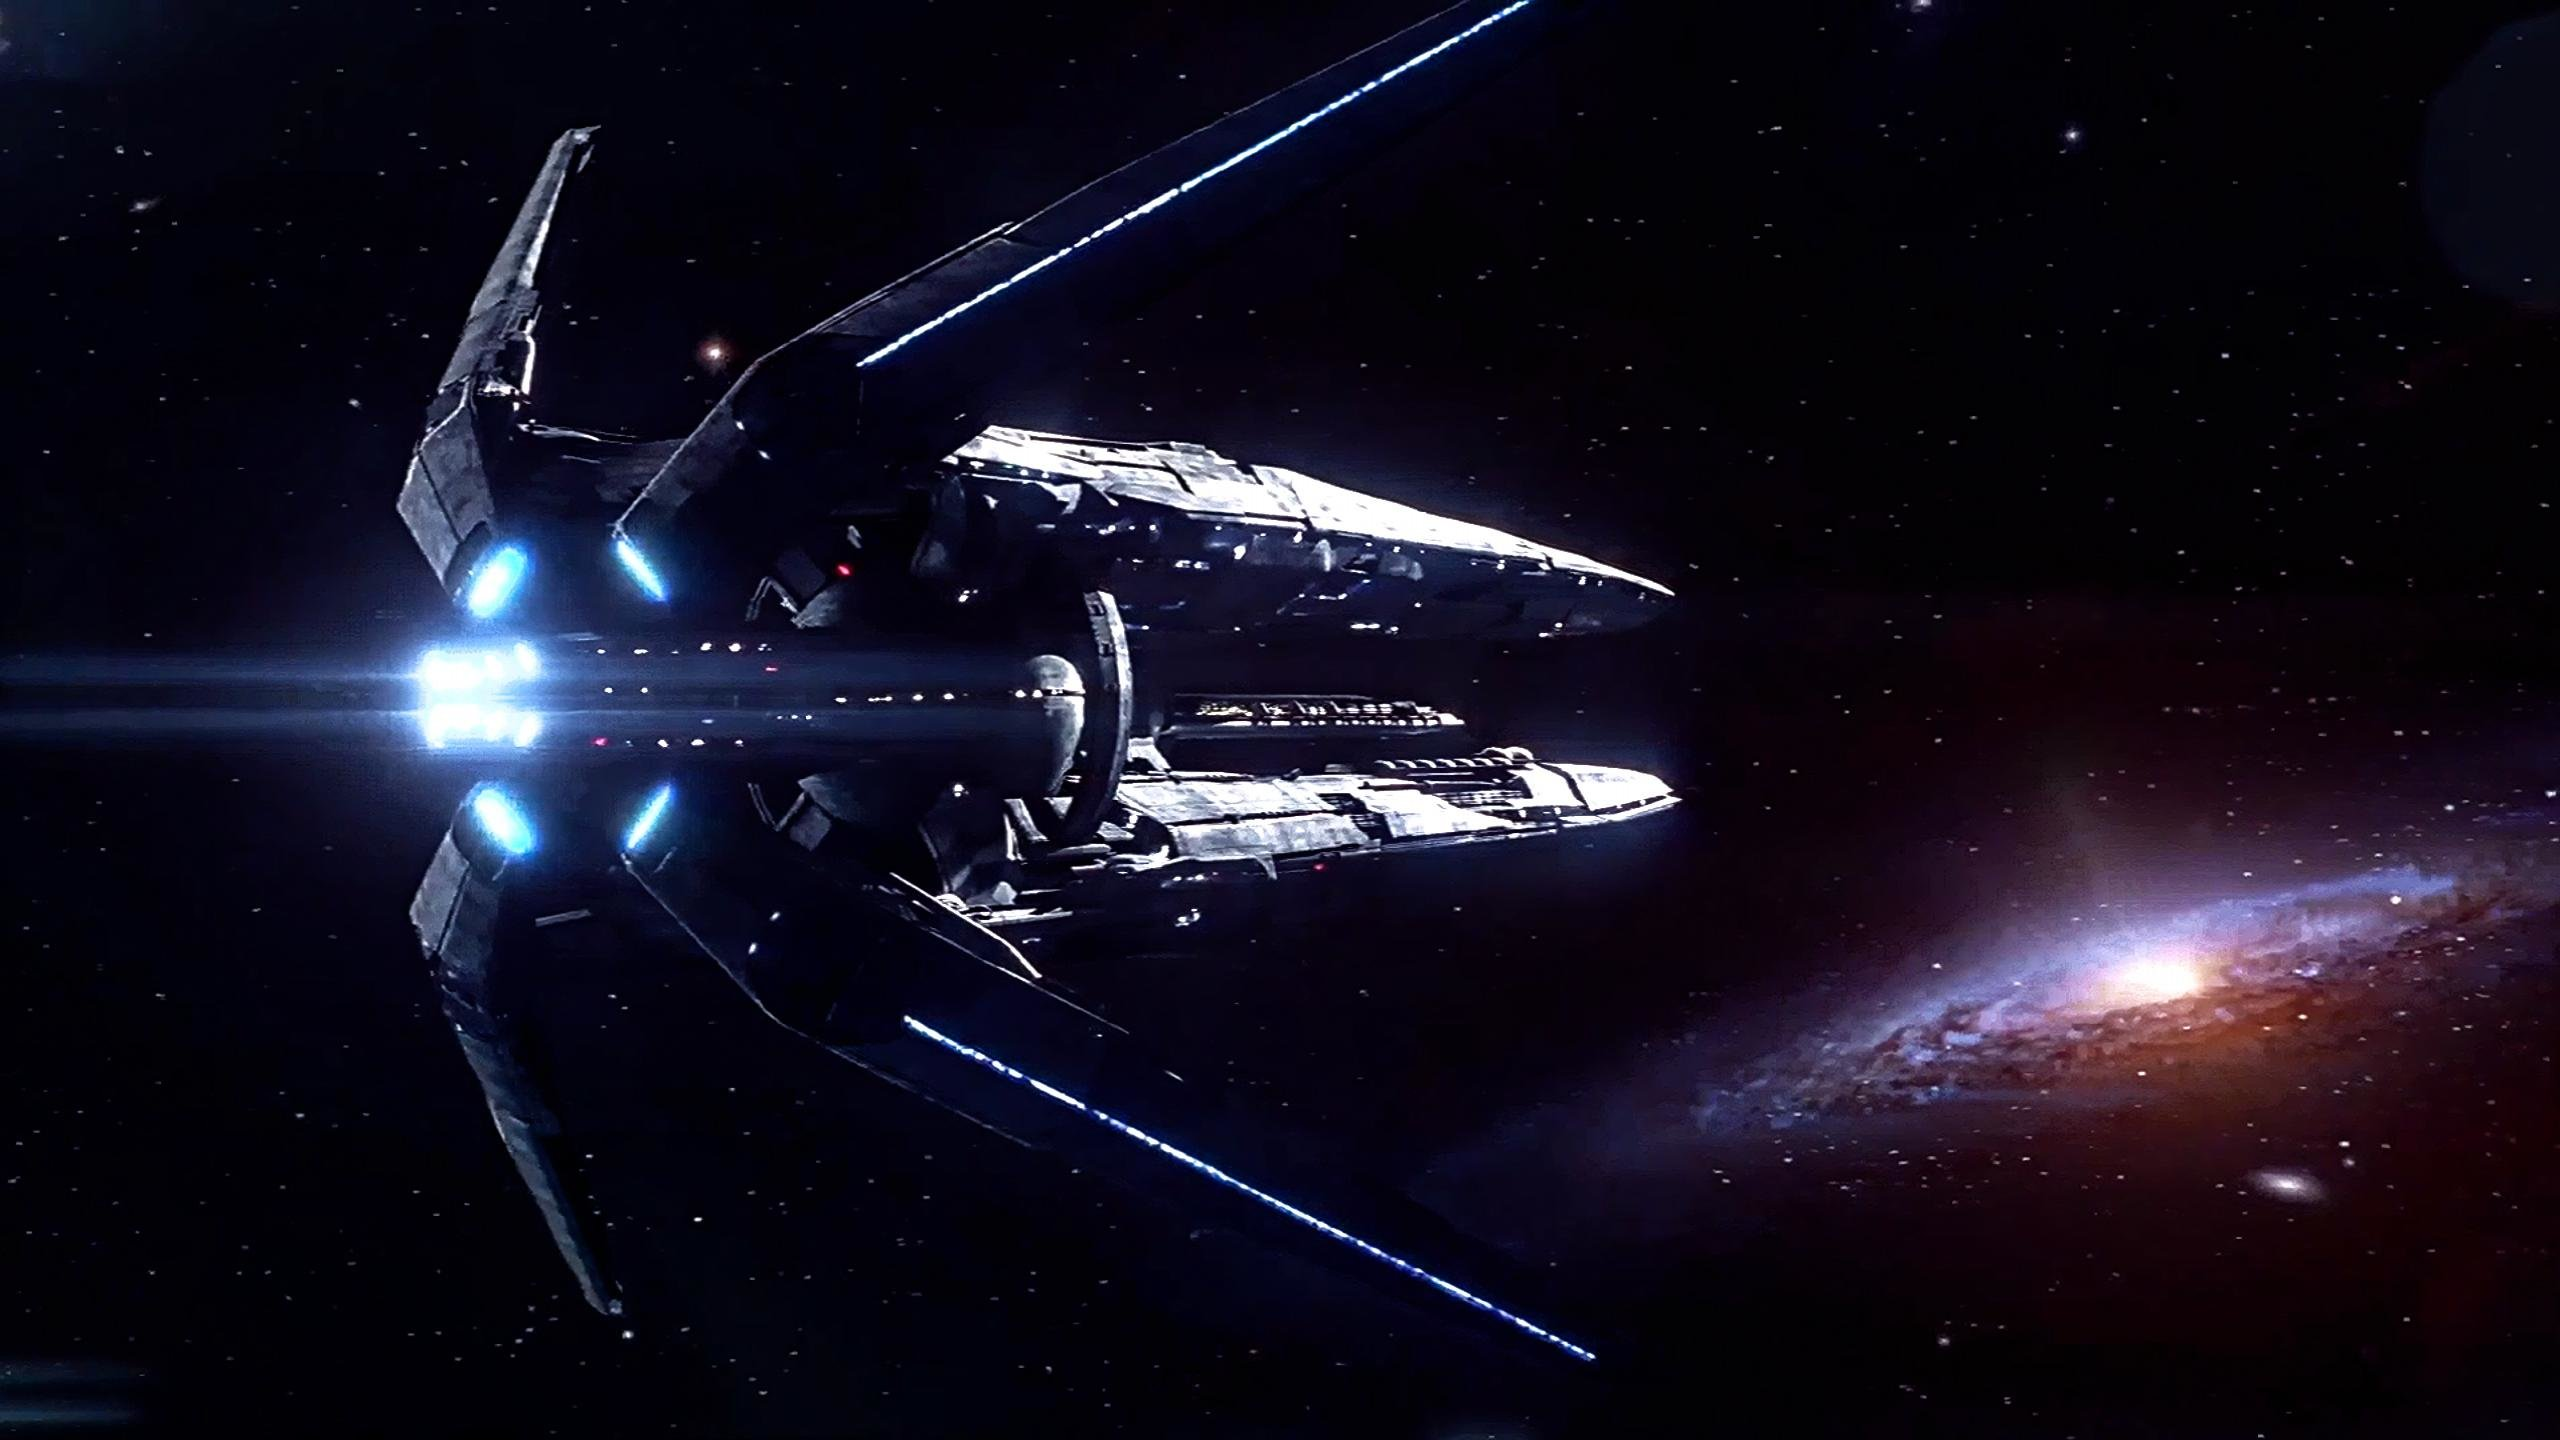 Mass Effect Andromeda Wallpapers Top Free Mass Effect